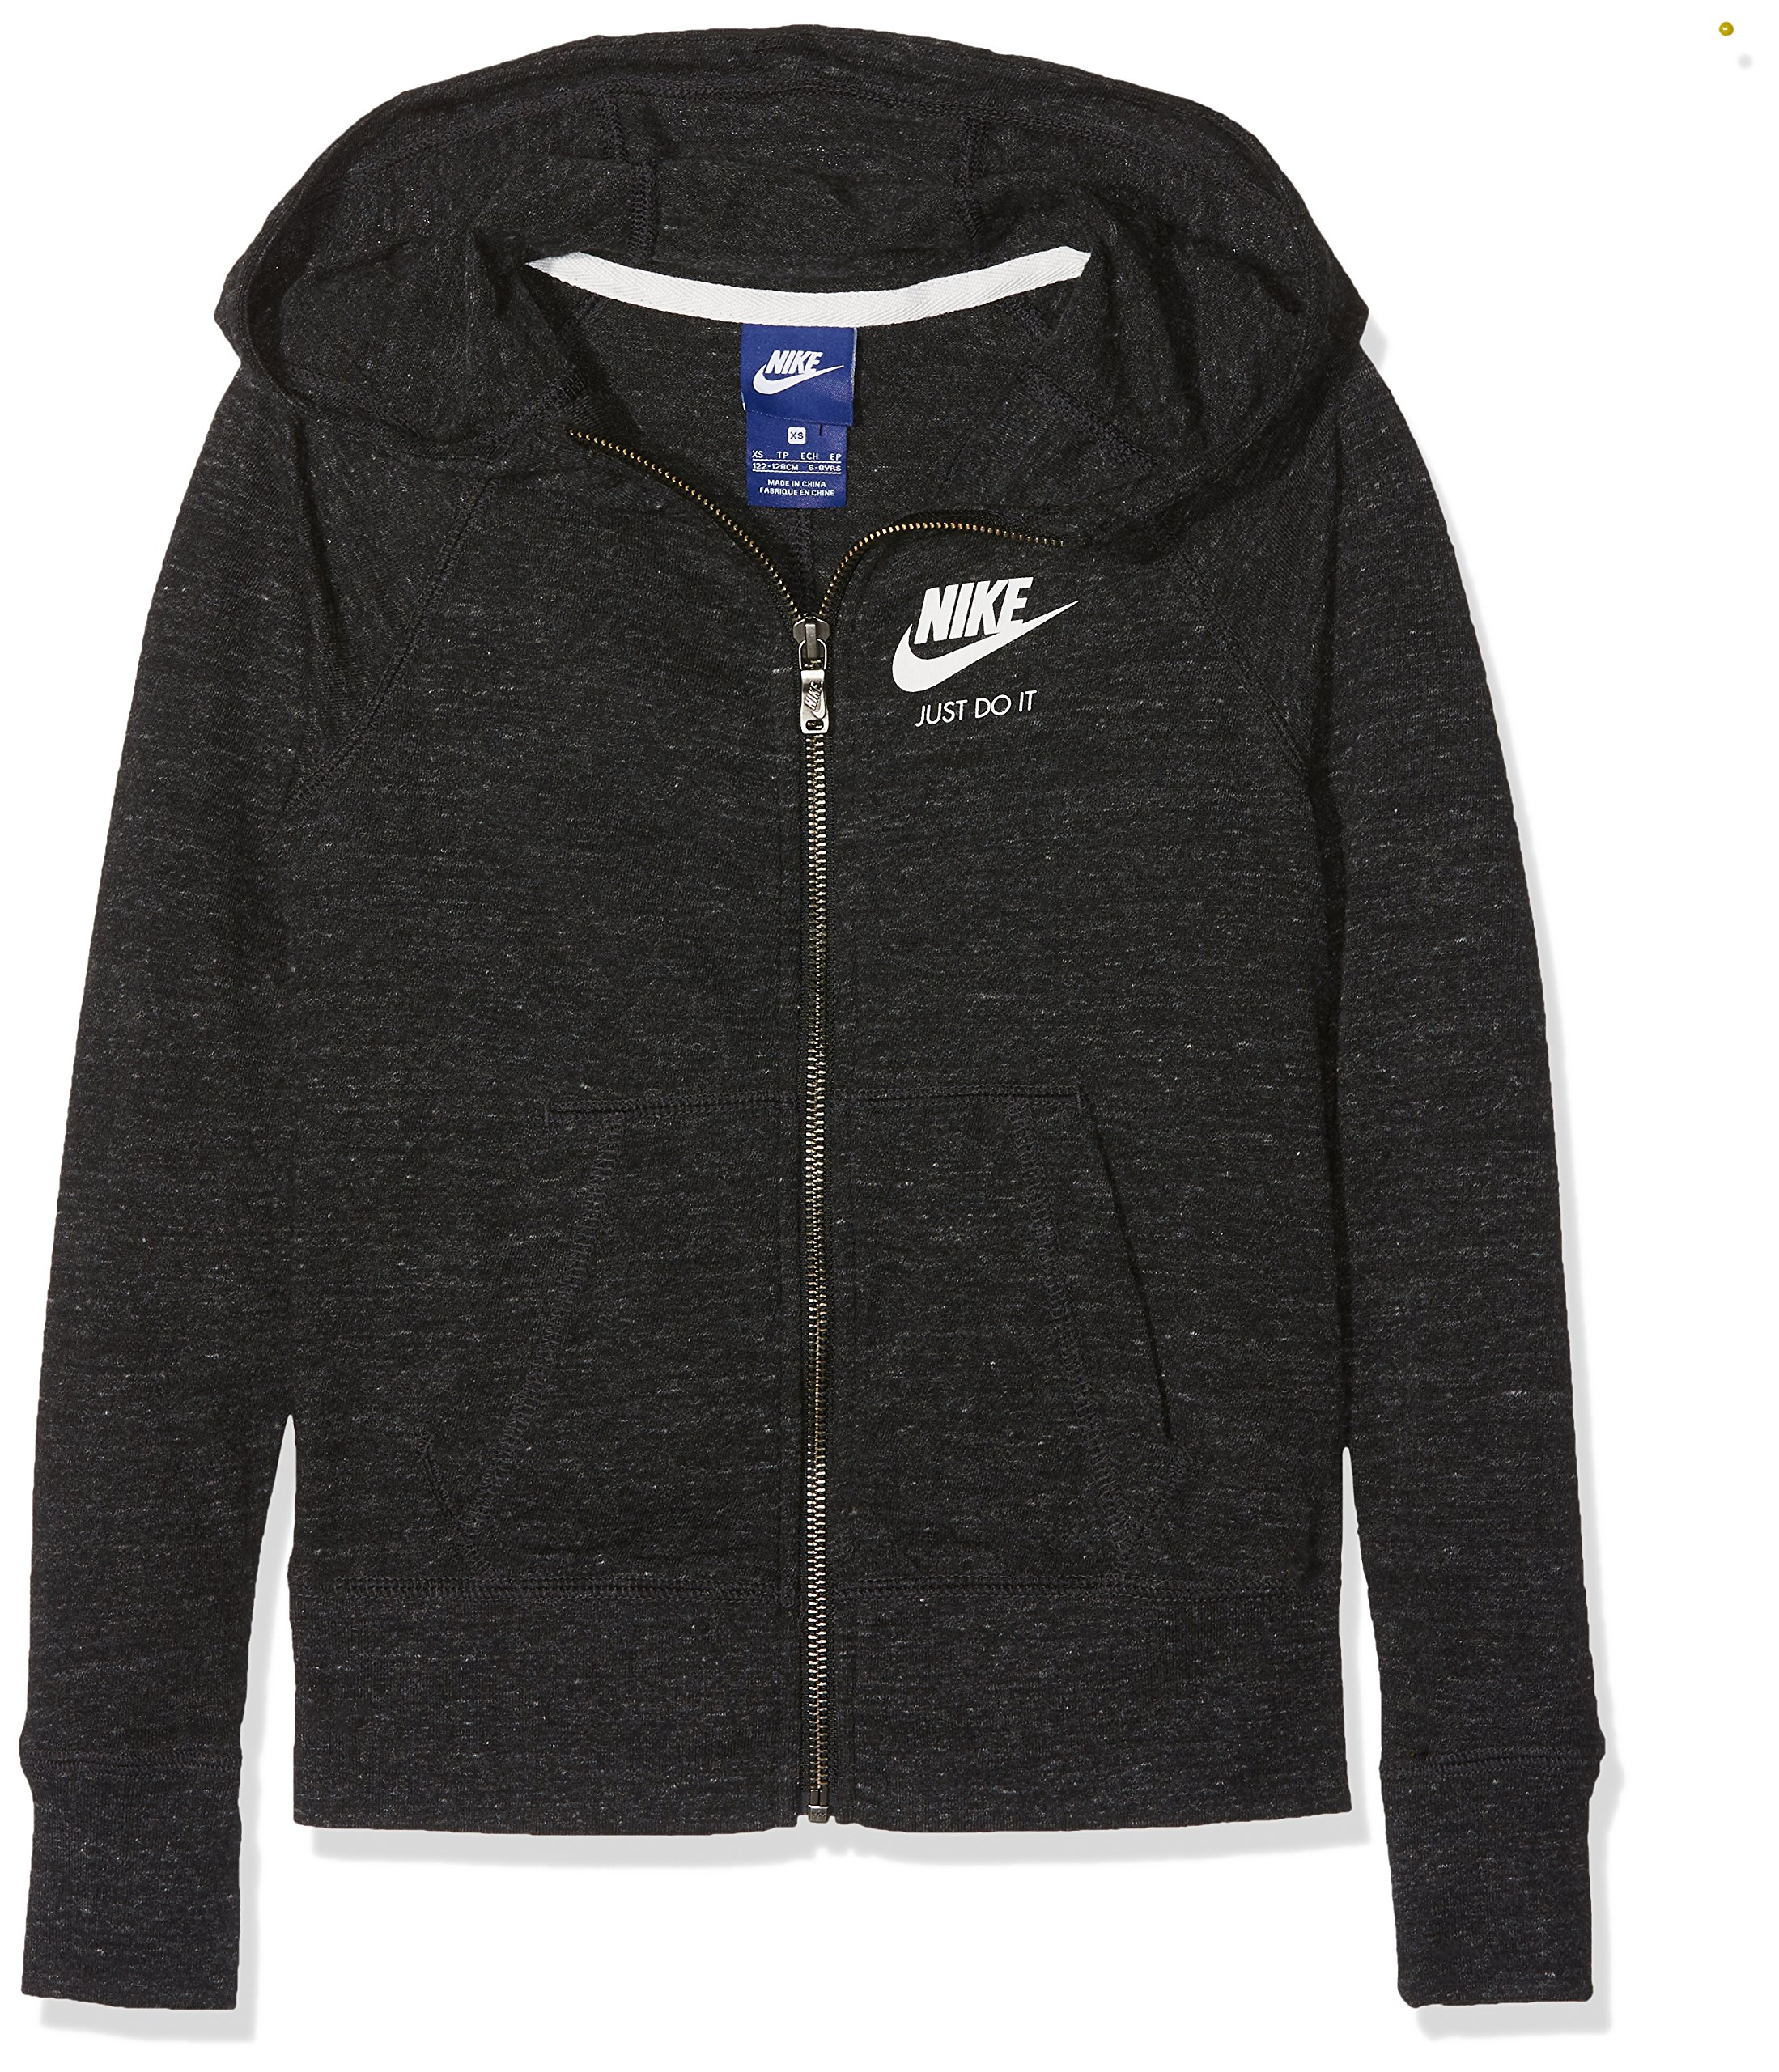 Nike Sportswear Vintage Older Kids' (Girls') Hoodie (Black, S)